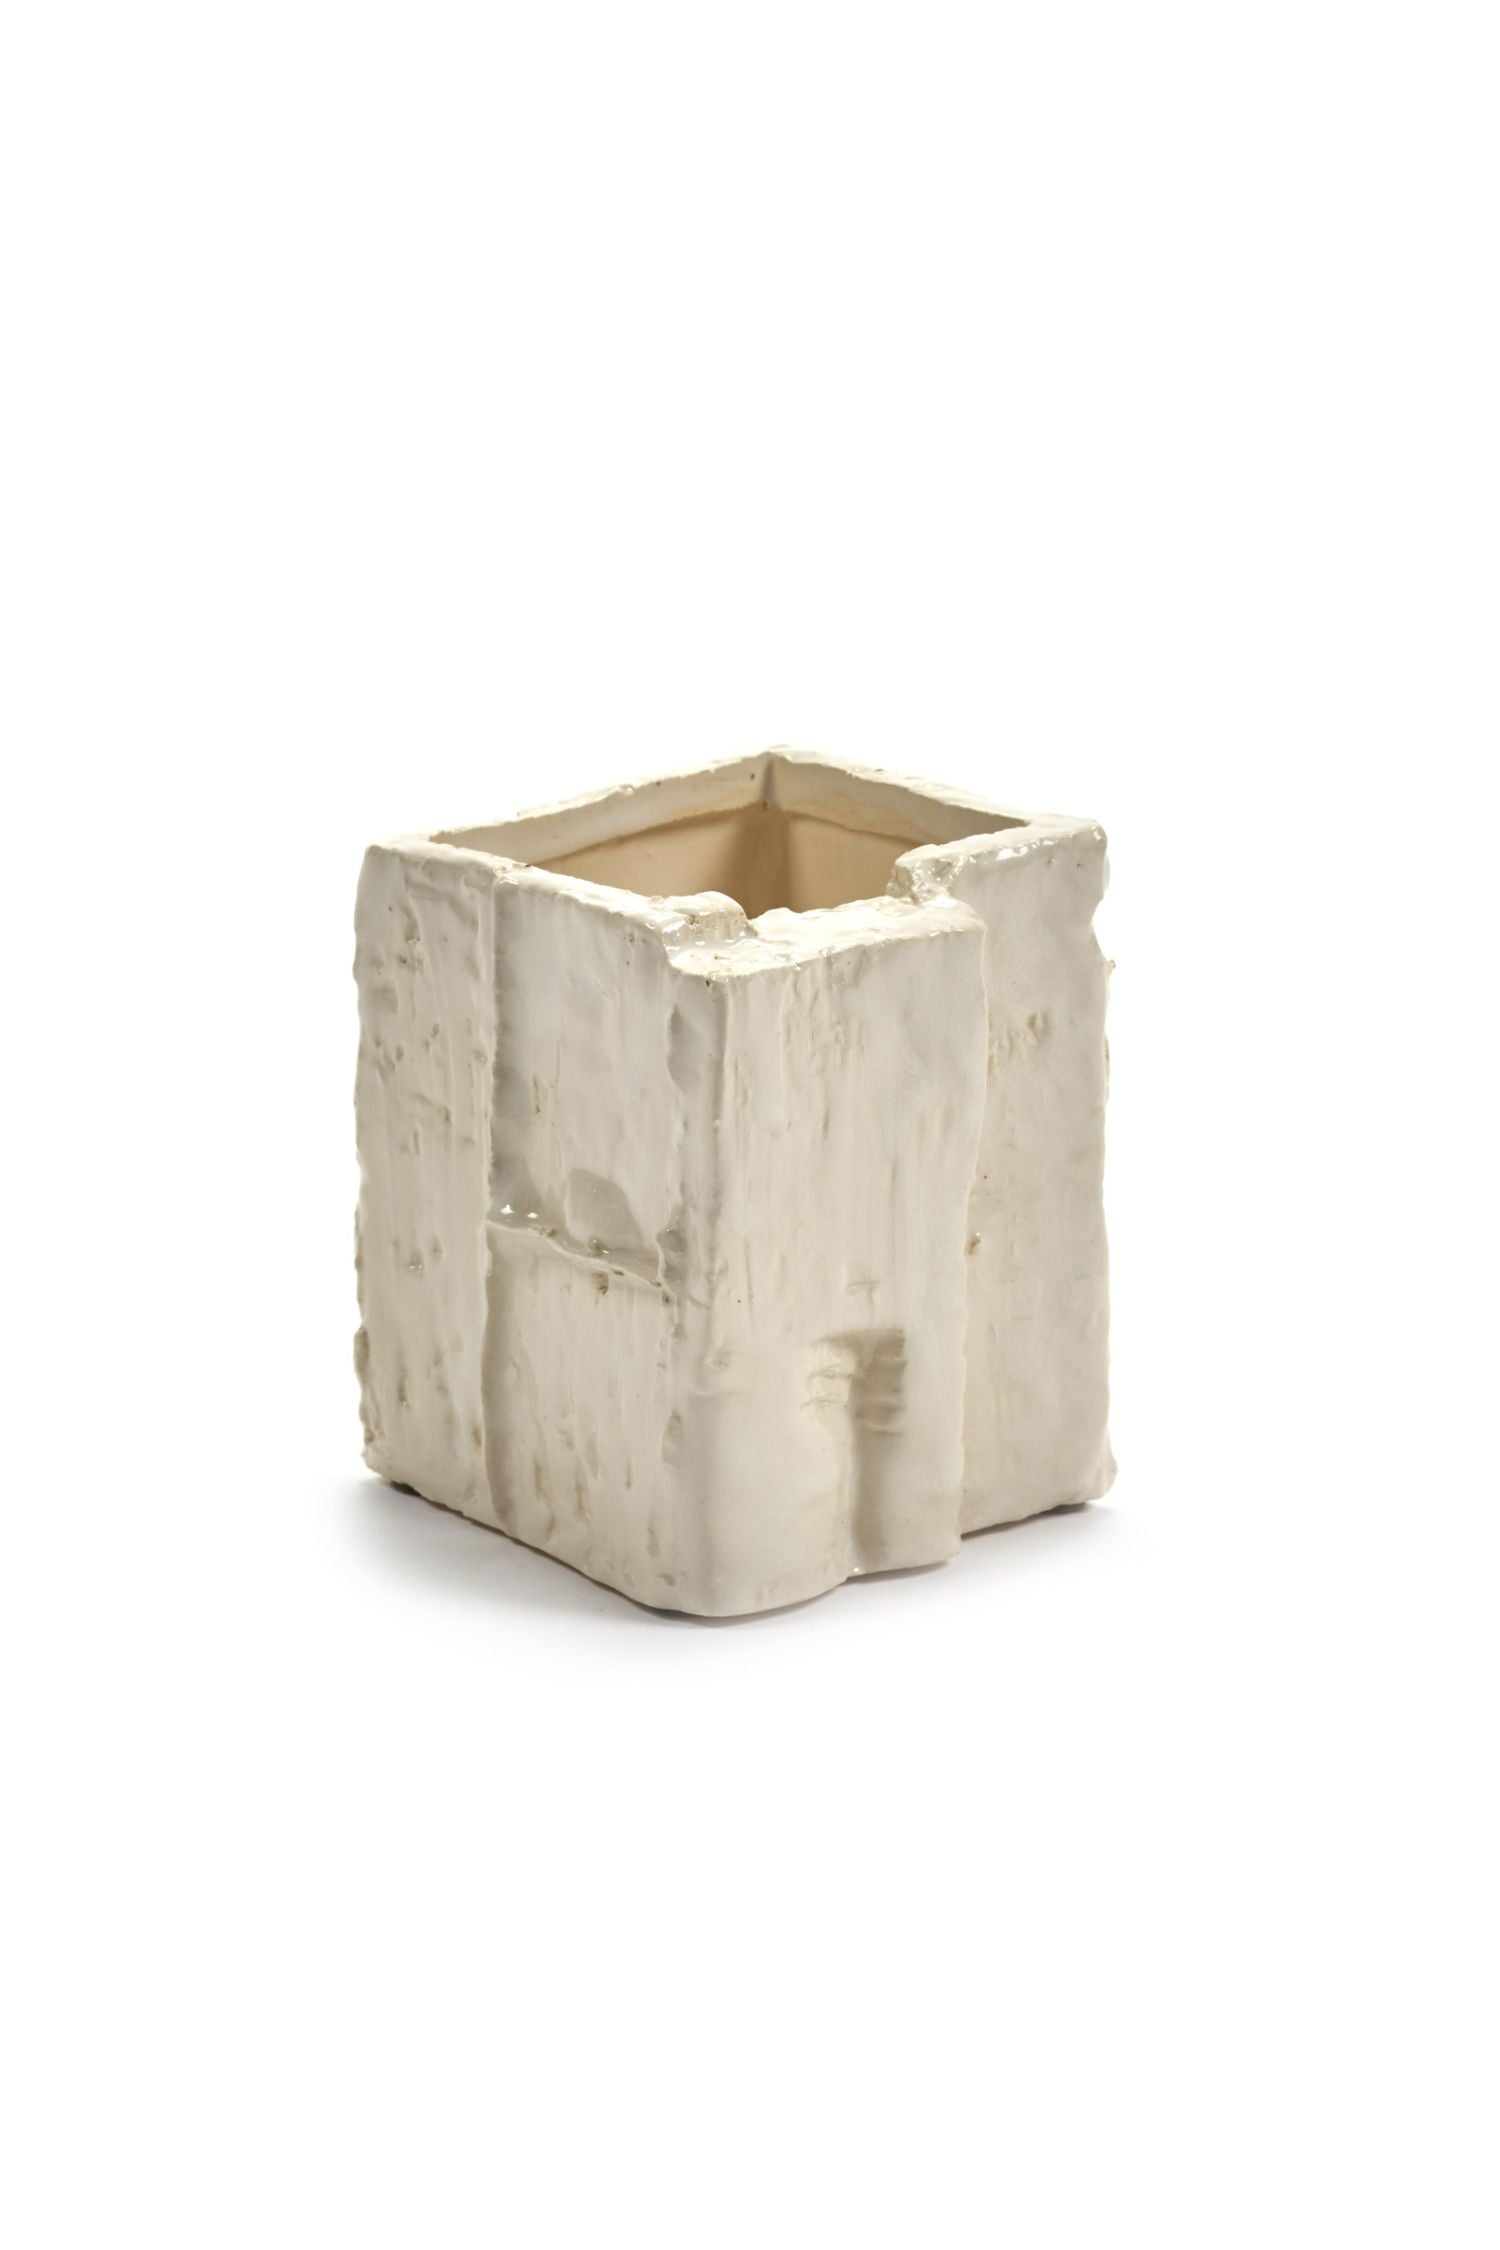 eucalyptus vase small square open